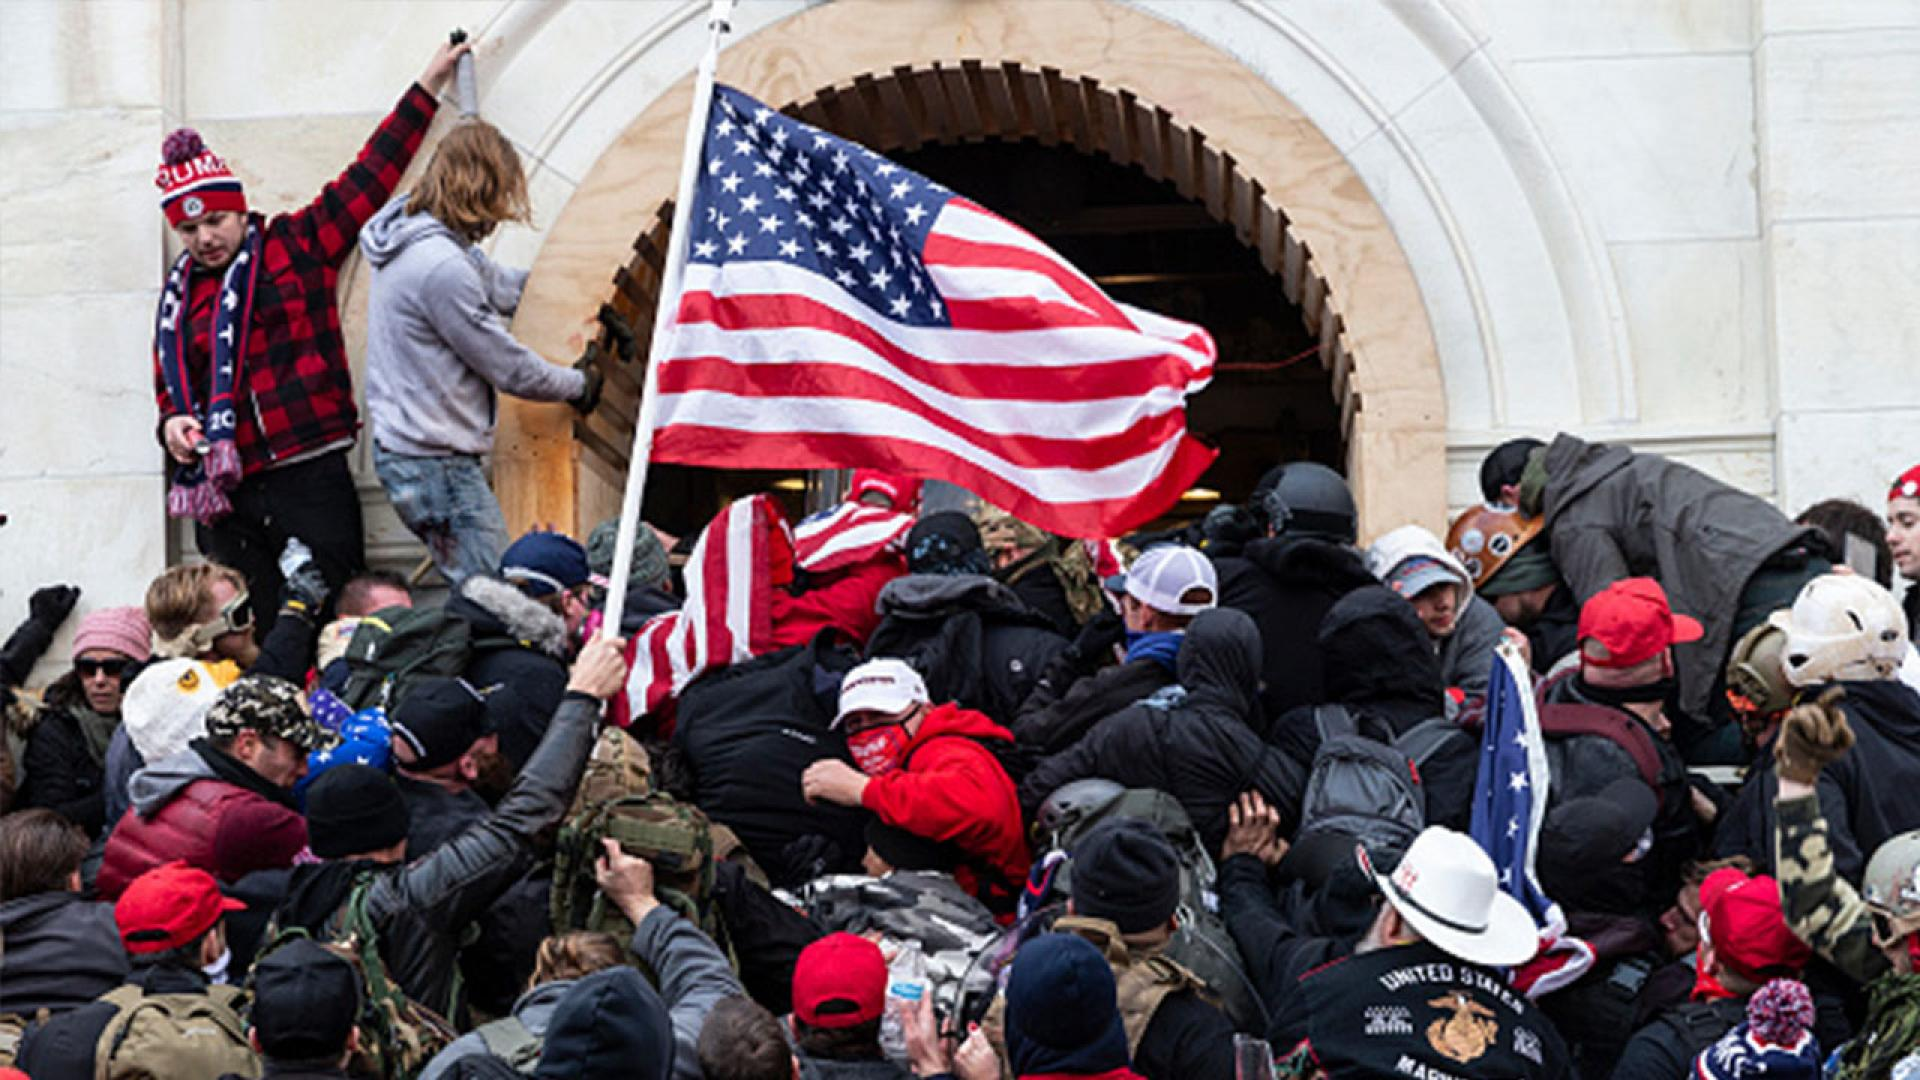 Scene of rioters pushing their way into the Capitol, Washington, D.C.